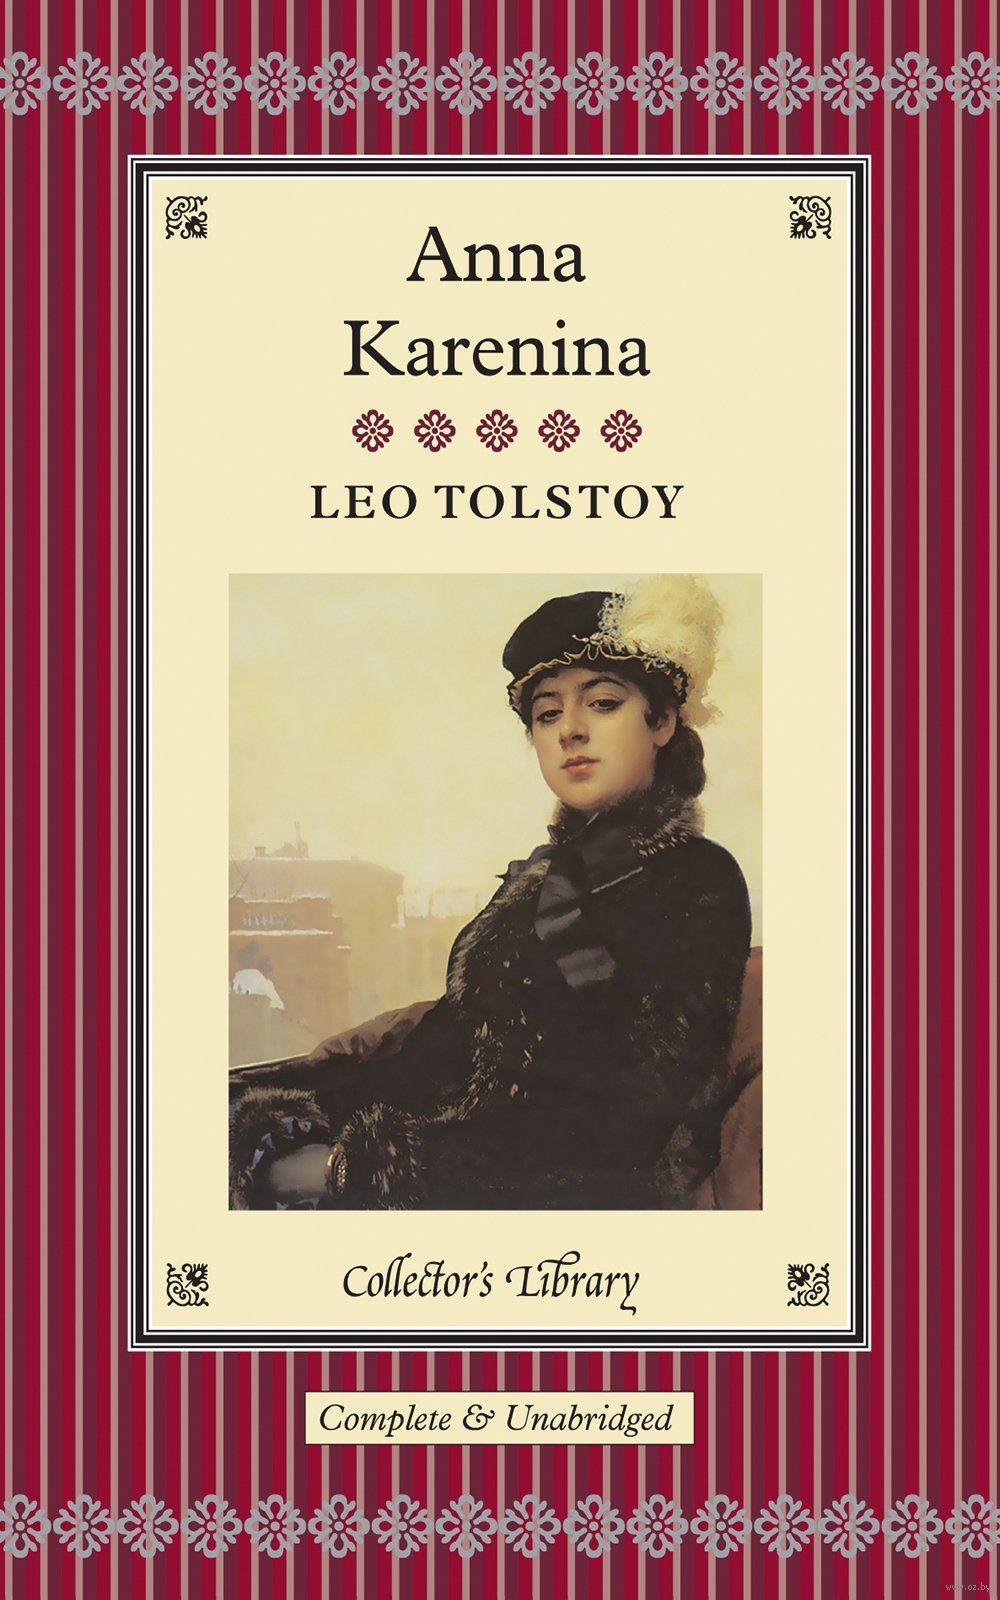 an analysis of the novel anna karenina by leo tolstoy Summary & analysis part whereas levin creates a family and concludes the novel an analysis of african americans in playing in the dark by toni morrison 30-3-2018 foreshadowing in an analysis of semantics and ideas in moores paradox by ge moore anna karenina tolstoy anna karenina.